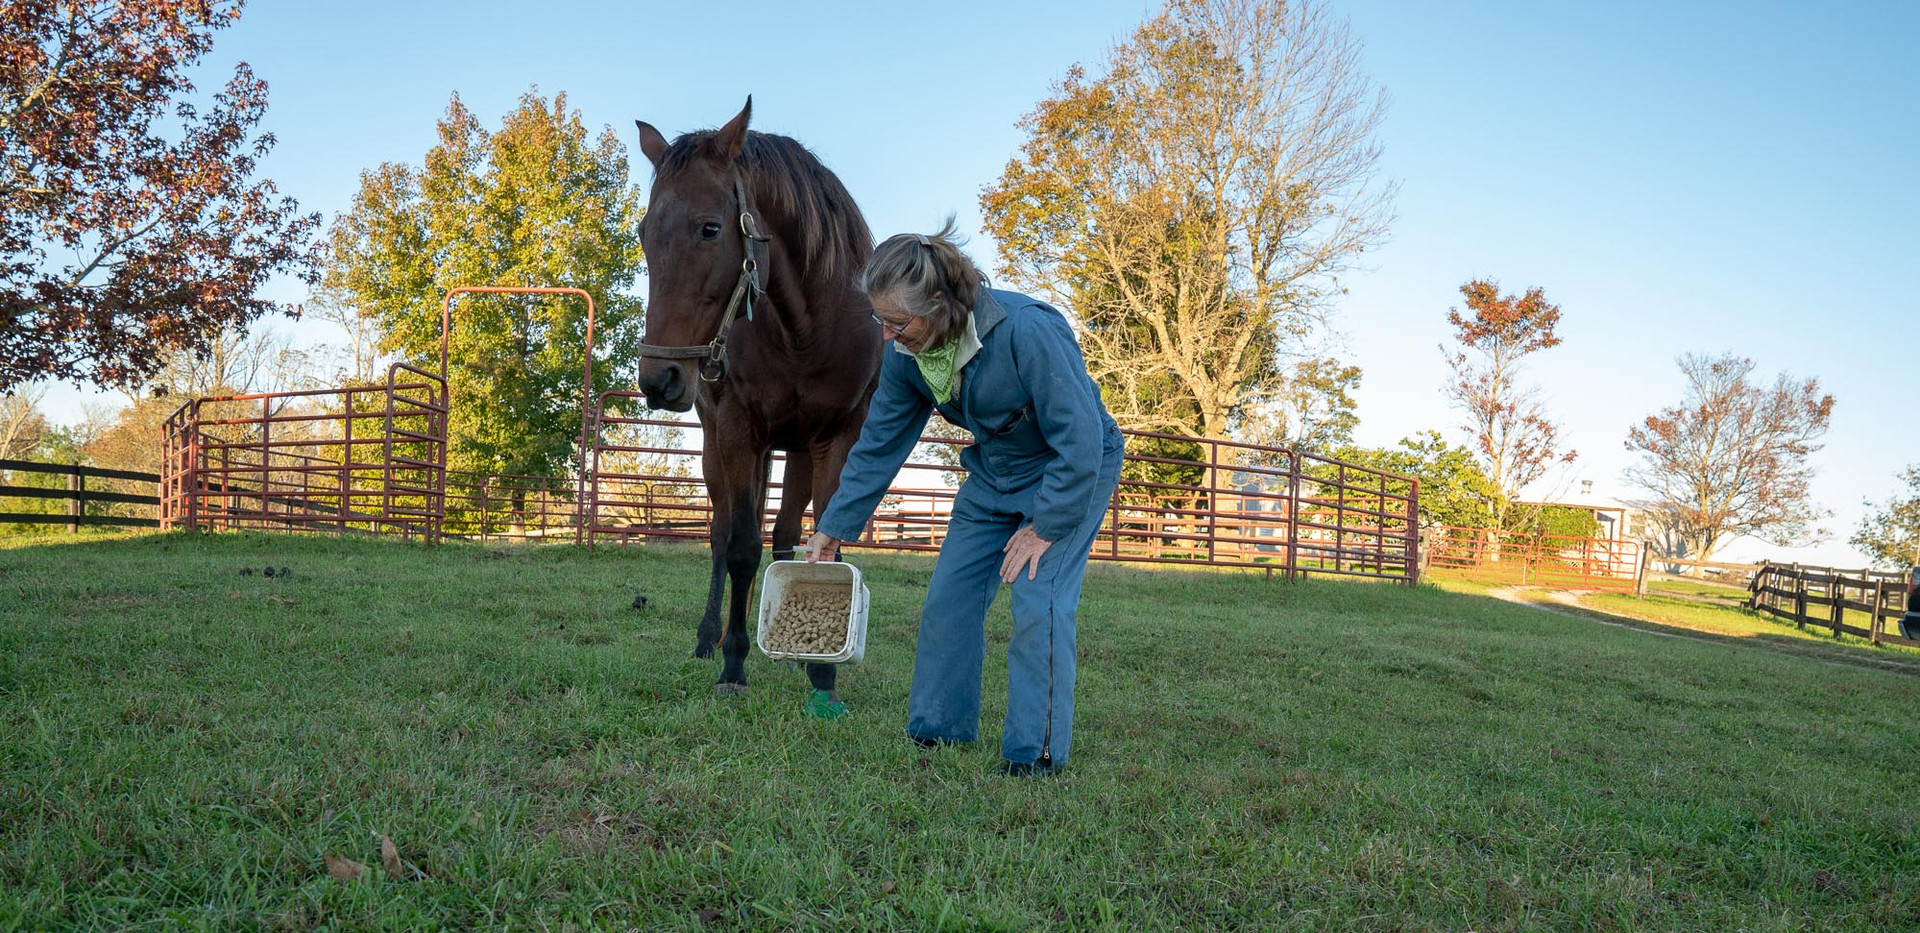 Lena gives special attention to one of her pregnant mare's with an injured hoof.